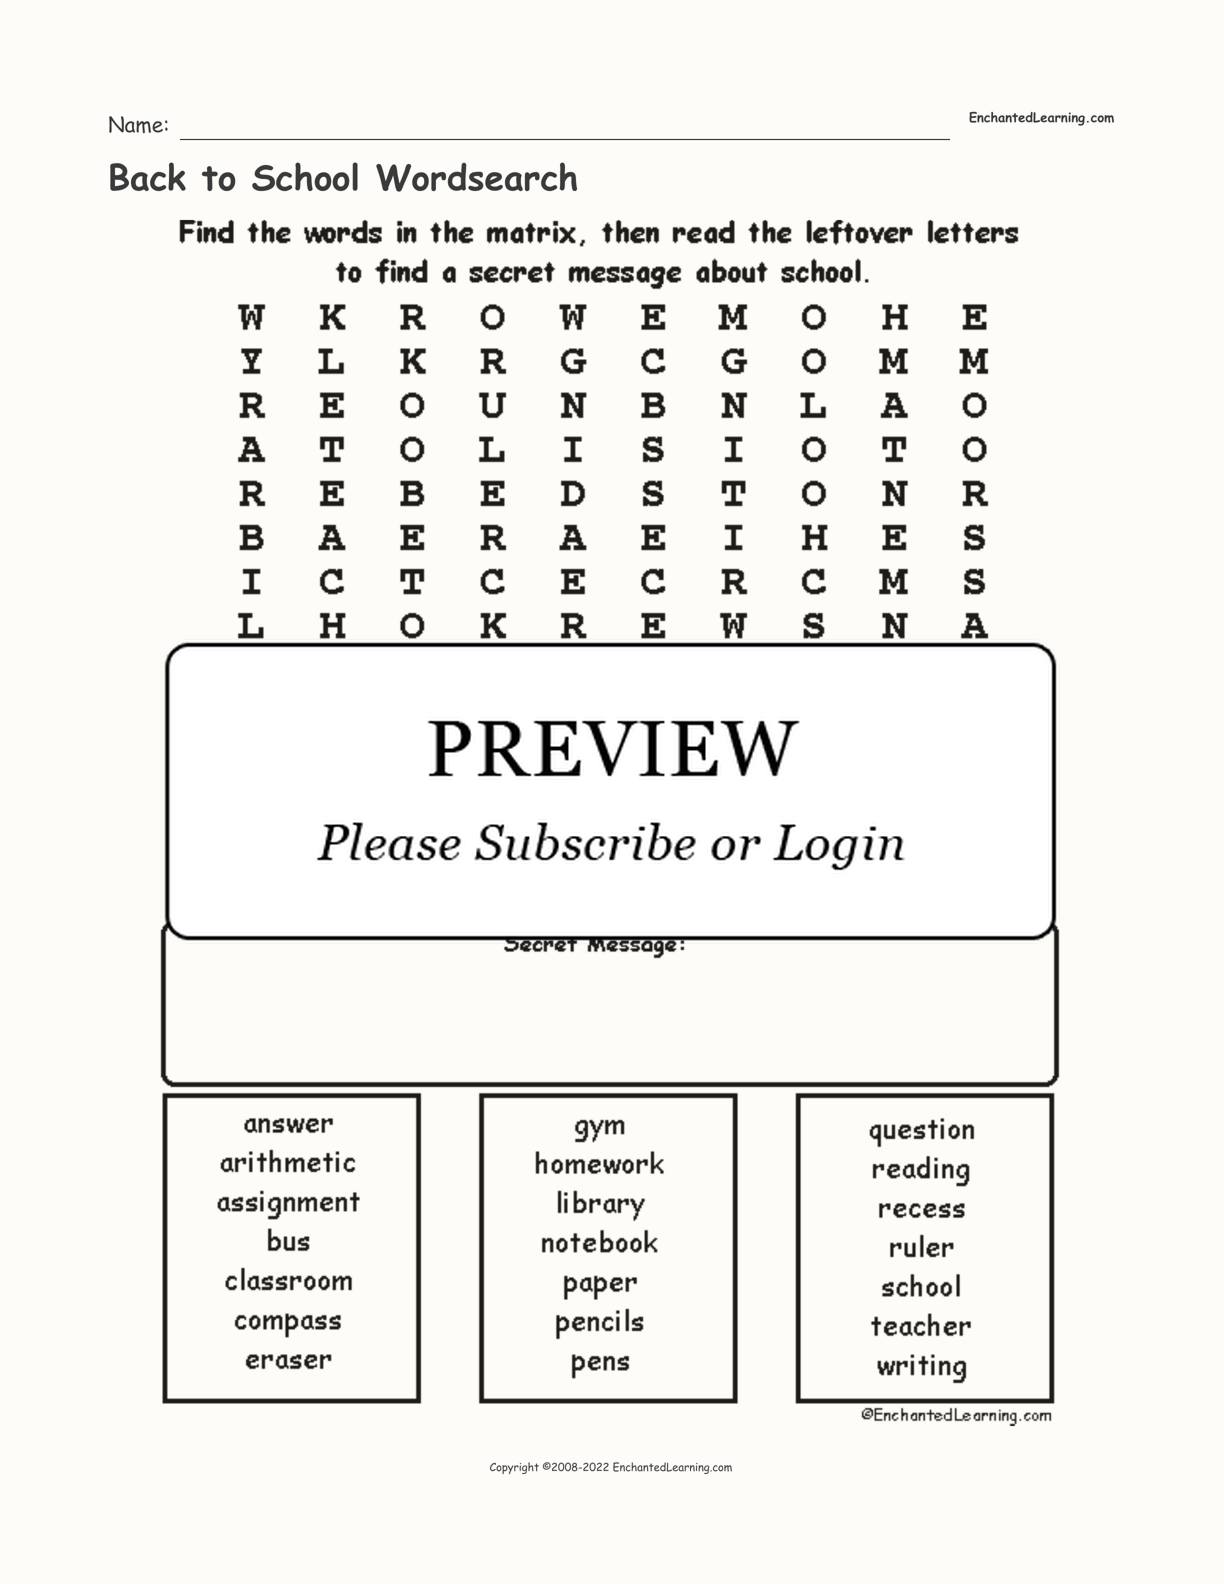 Back to School Wordsearch interactive worksheet page 1